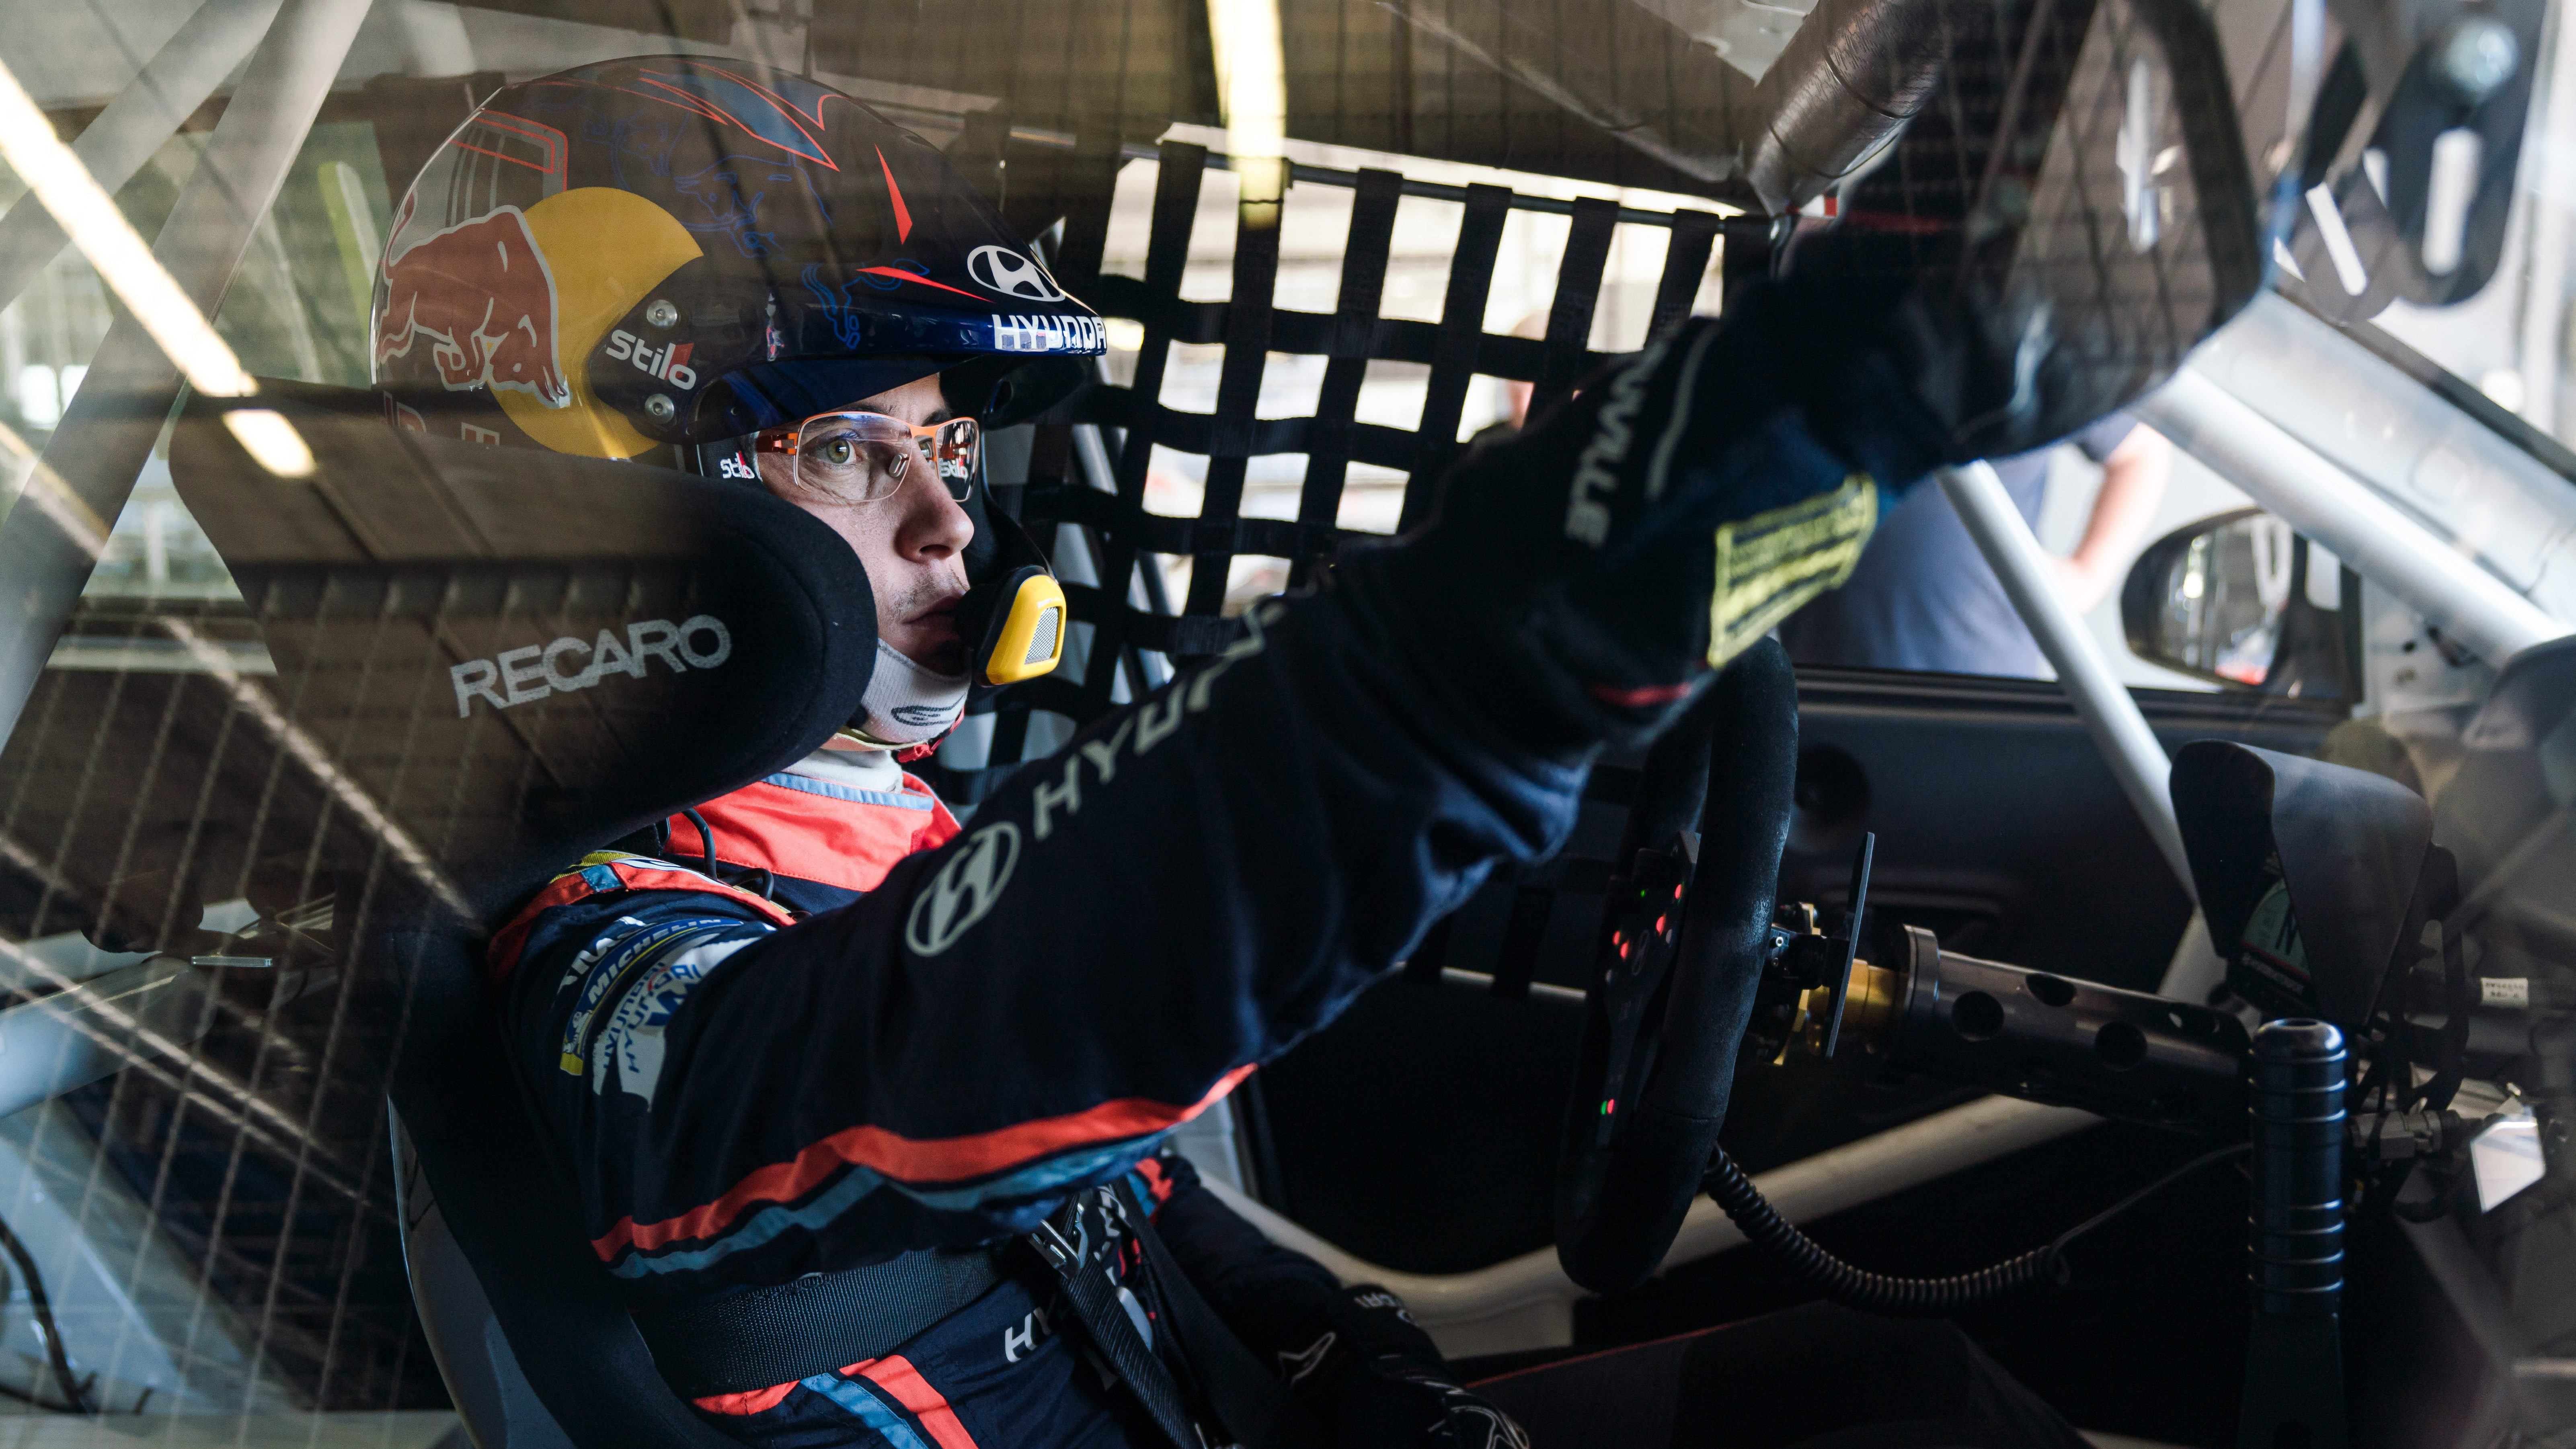 Rally star Thierry Neuville ready for guest start in ADAC TCR Germany